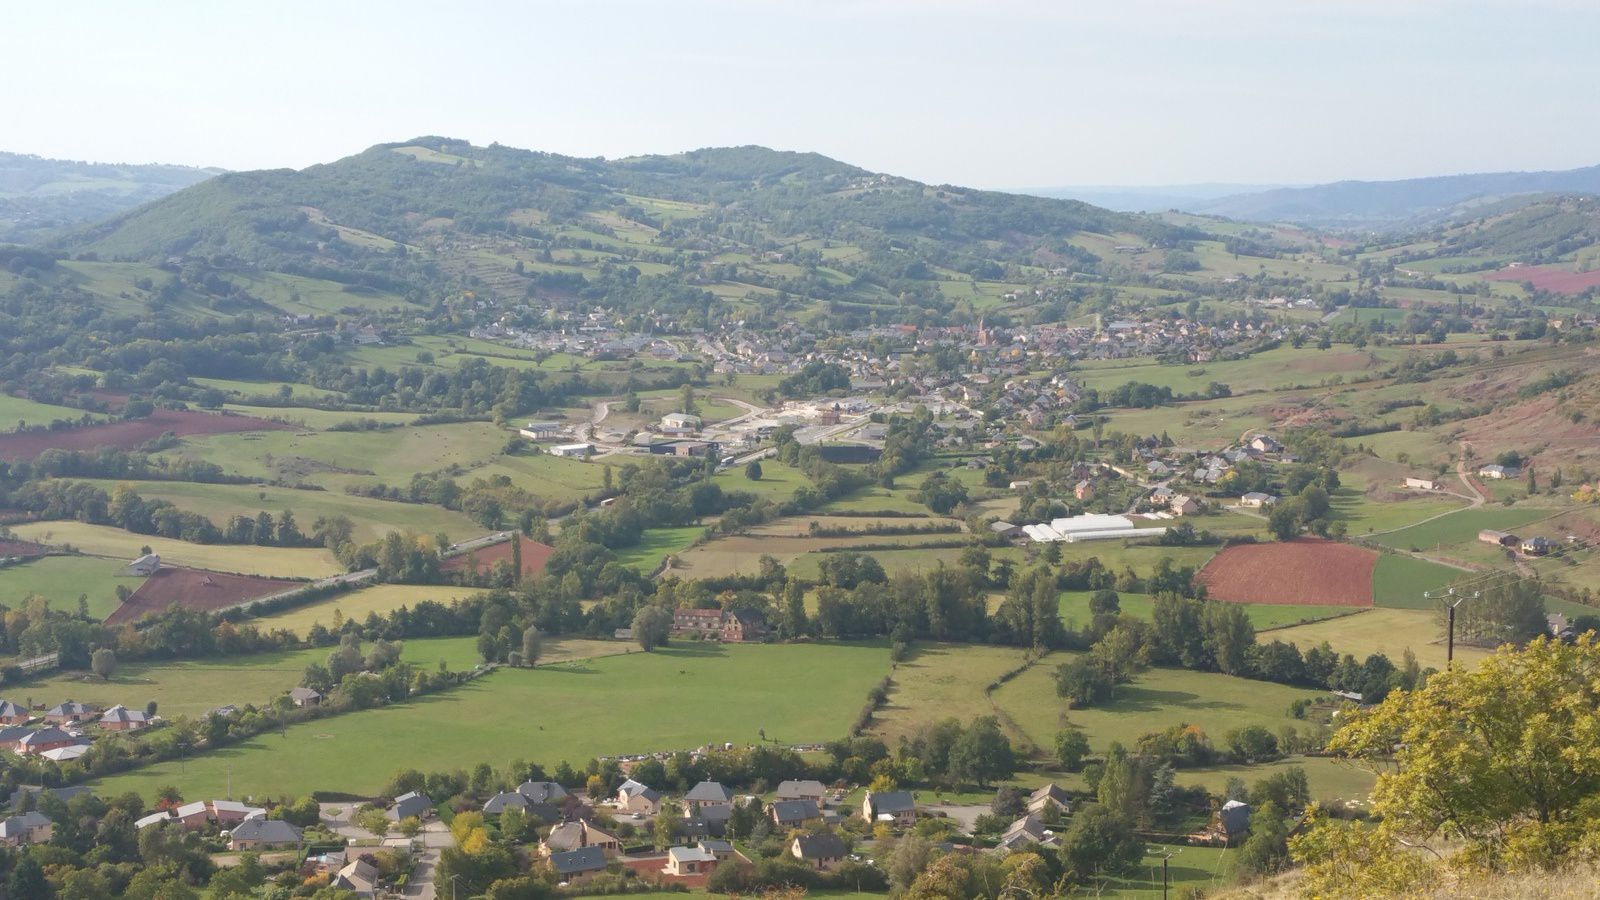 Le village de St Christophe